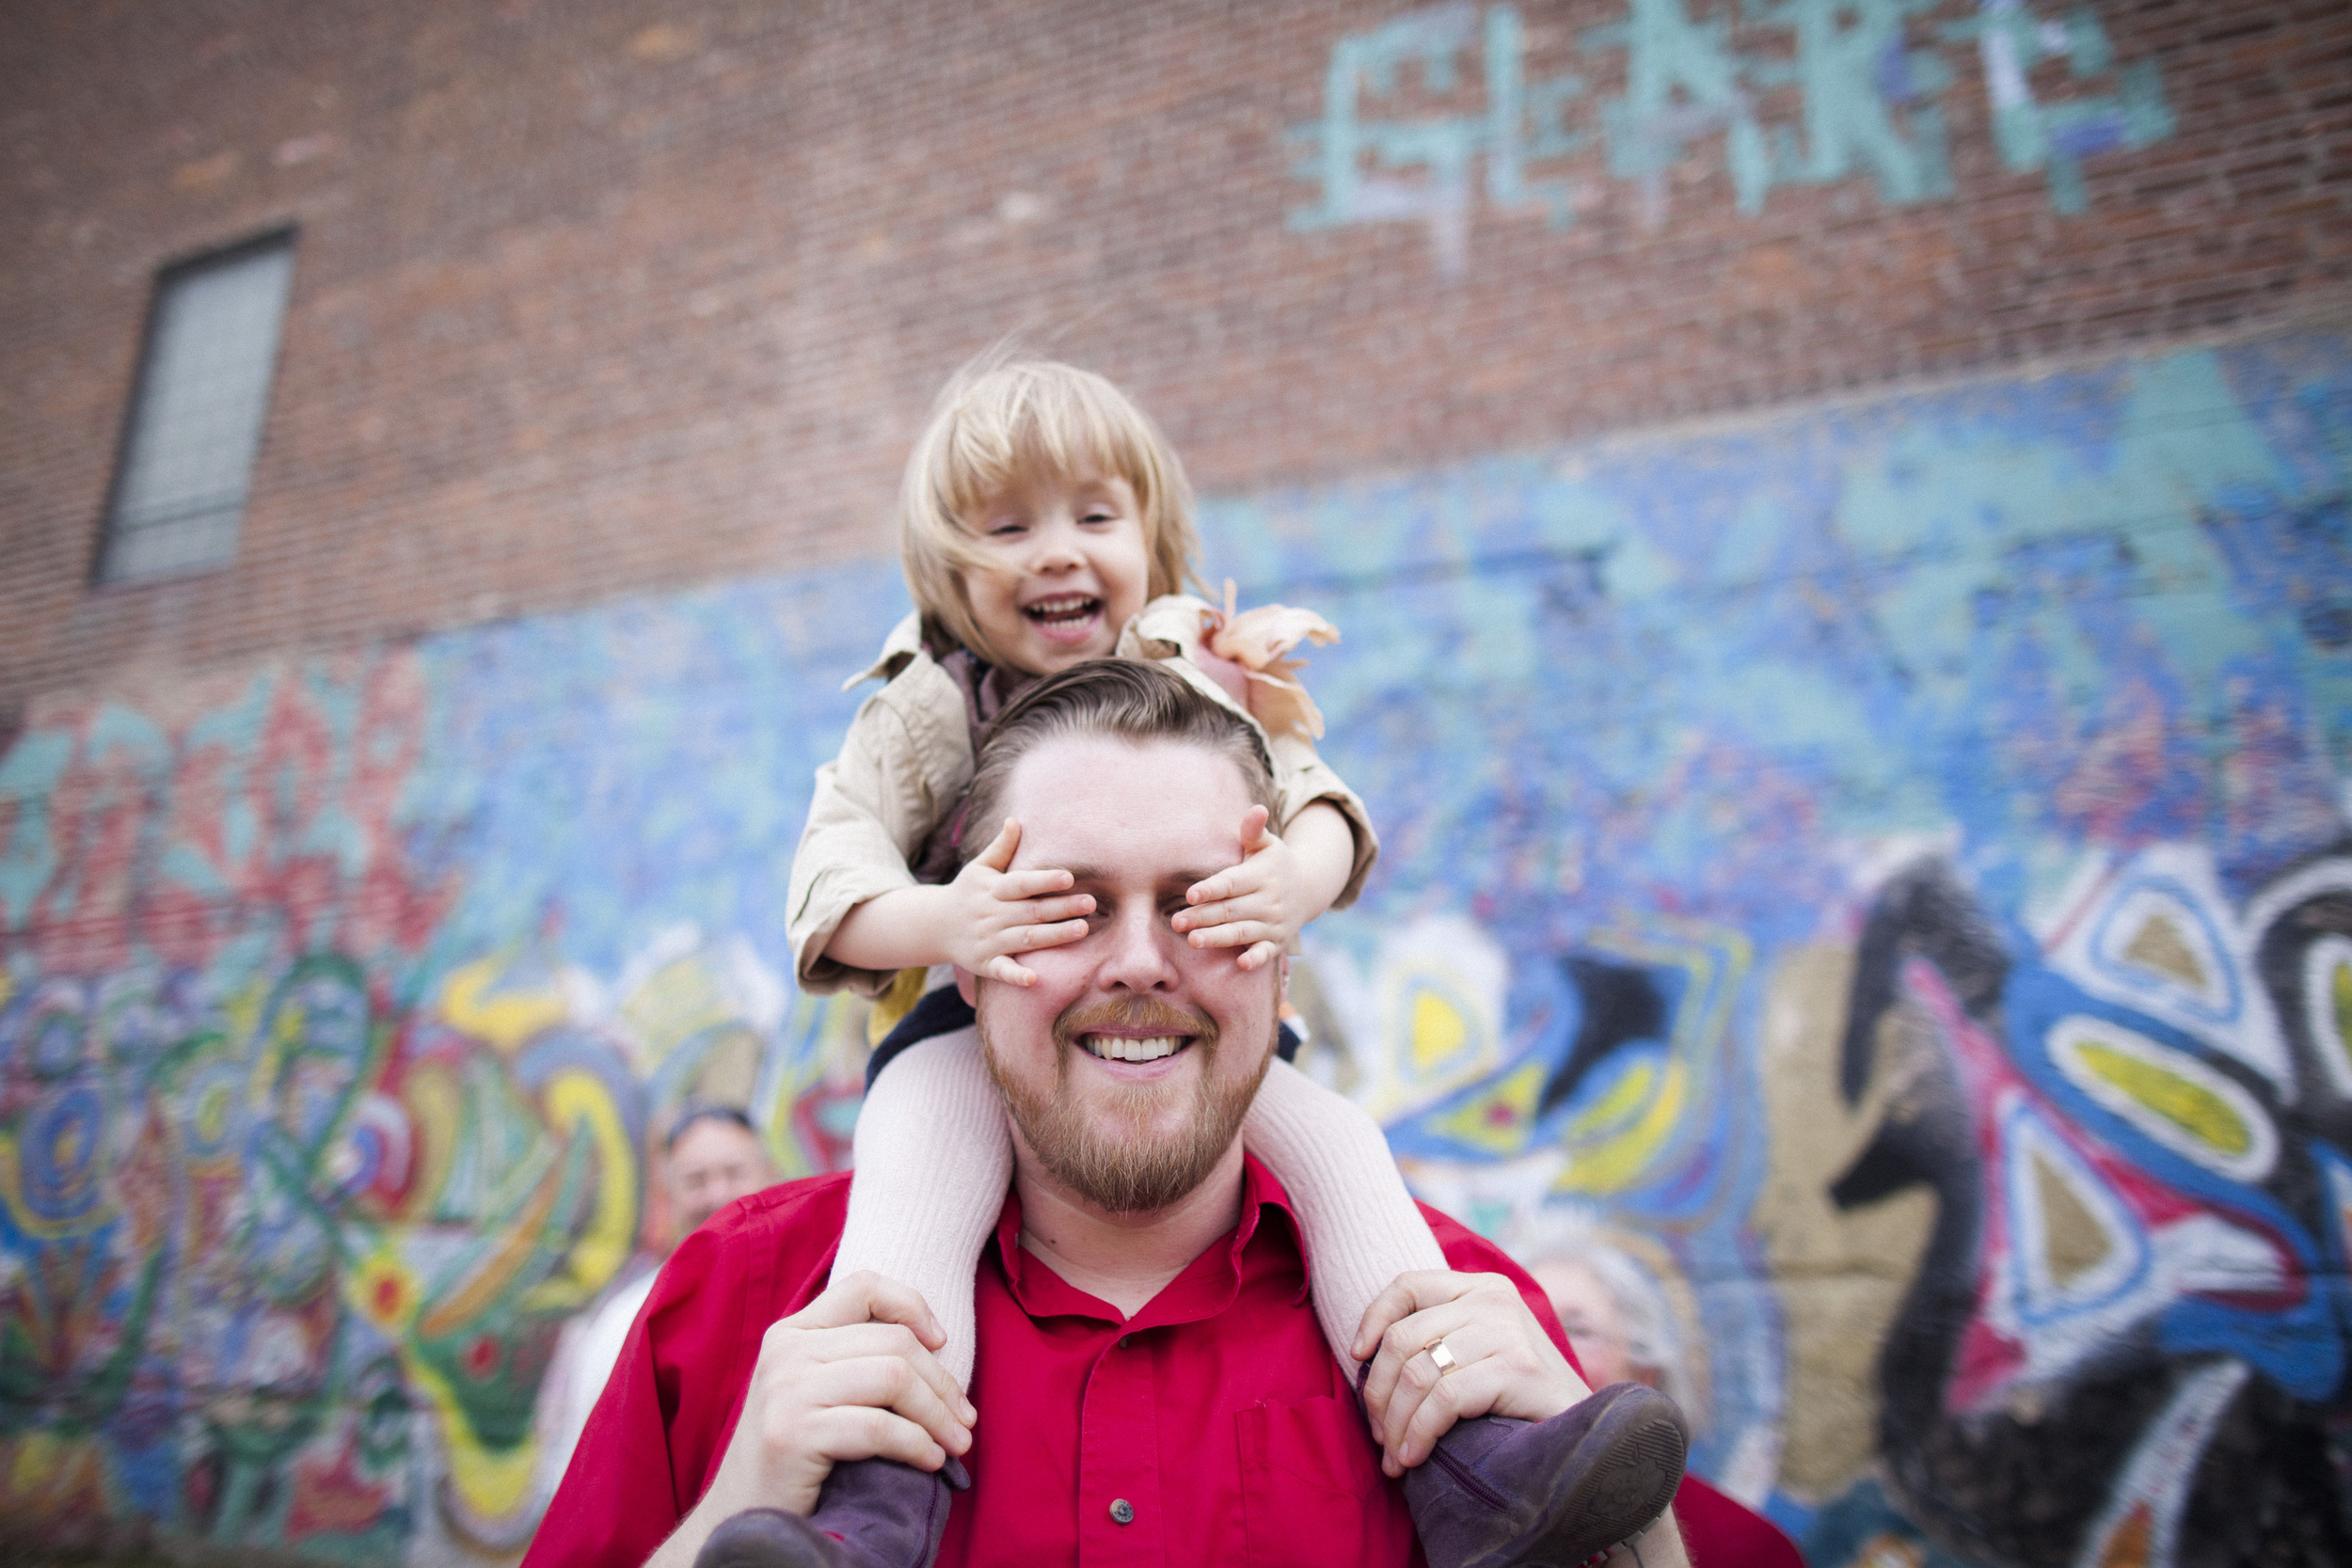 edmonton family photographer26.jpg